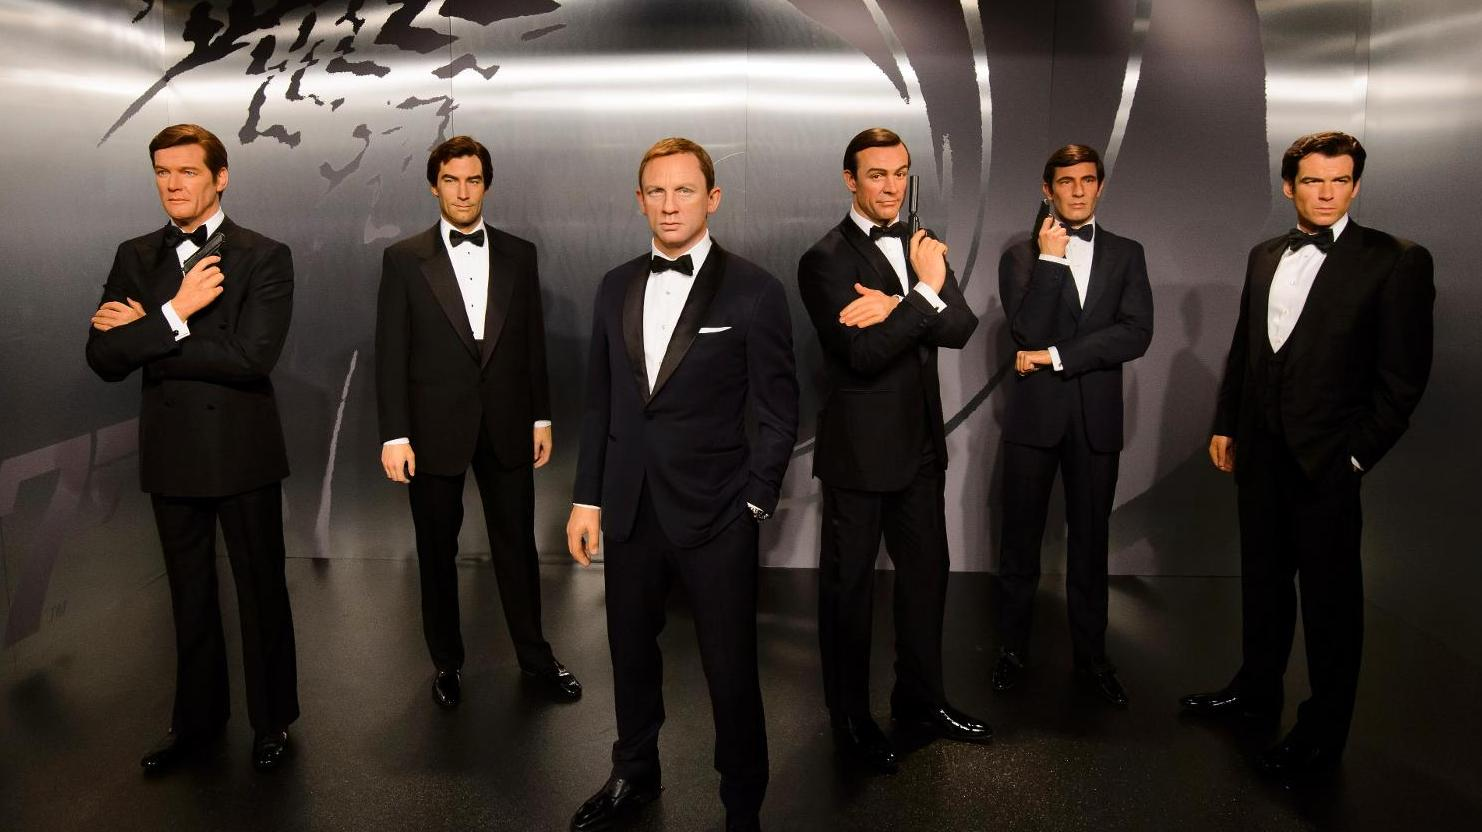 All the James Bonds at Madame Tussauds London - Roger Moore,  Timothy Dalton, Daniel Craig, Sean Connery , George Lazenby, Pierce Brosnan